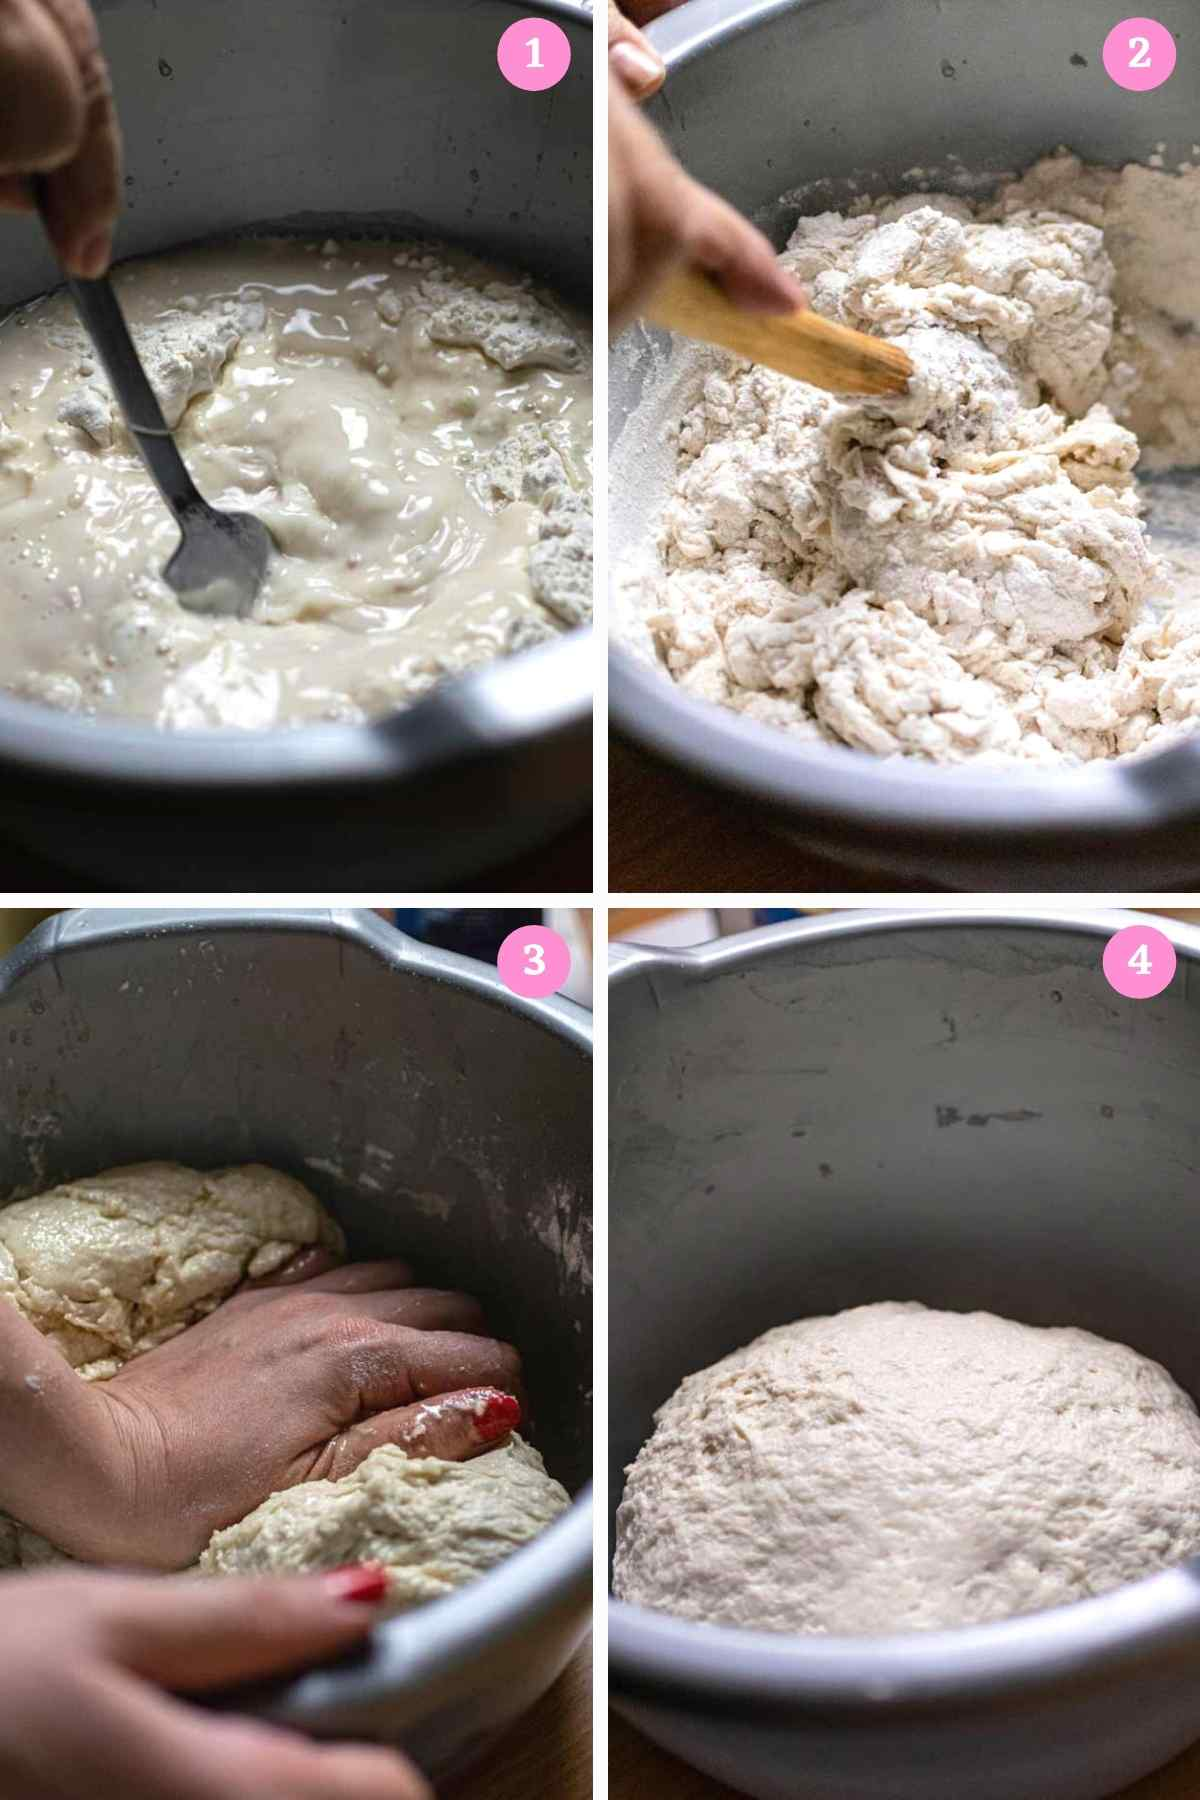 Collage of 4 images showing how to make dough for meat hand pie